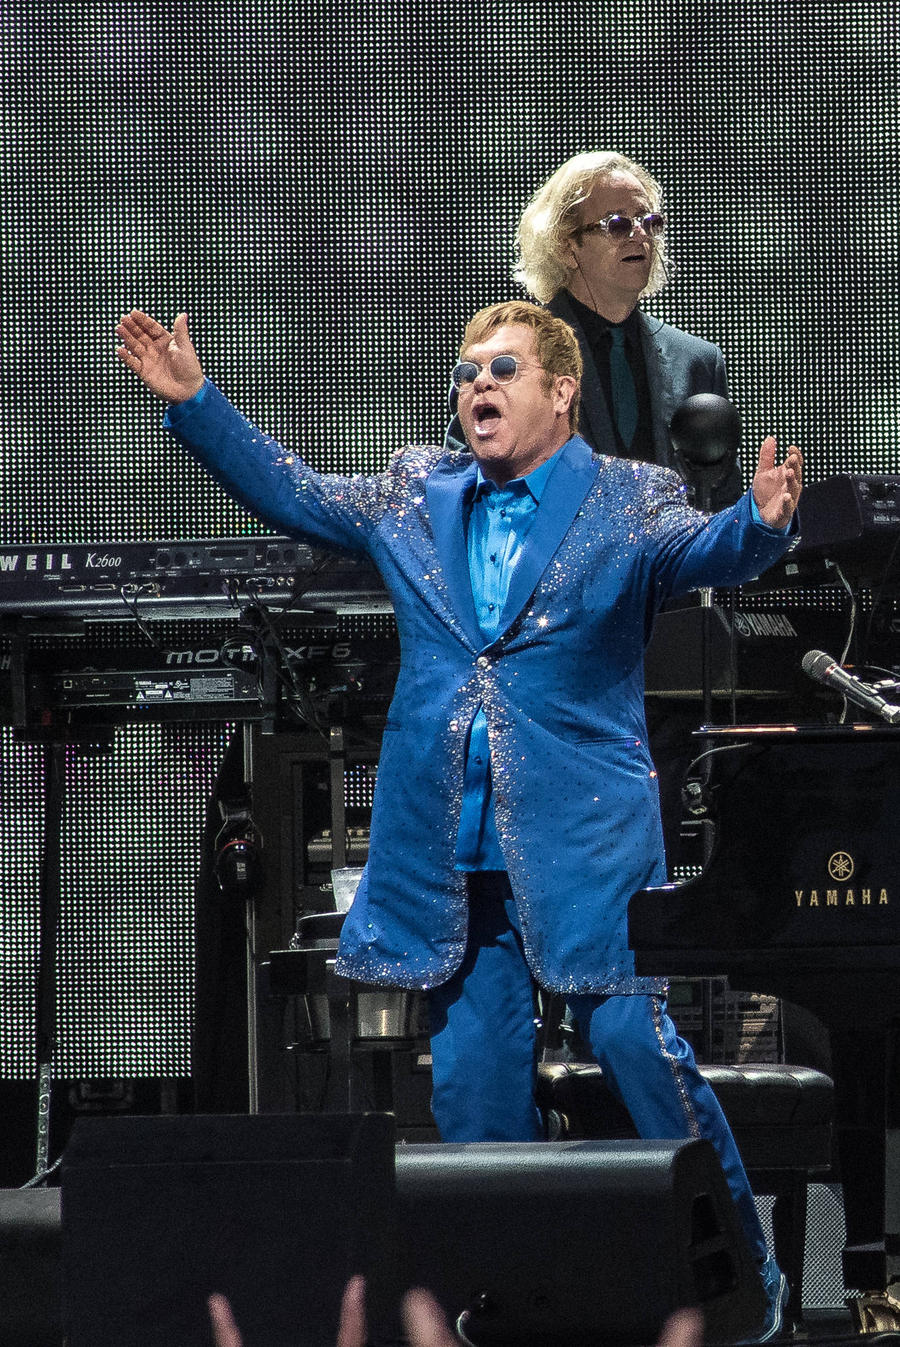 Elton John 'Launches Rant At Concert Security Guards'